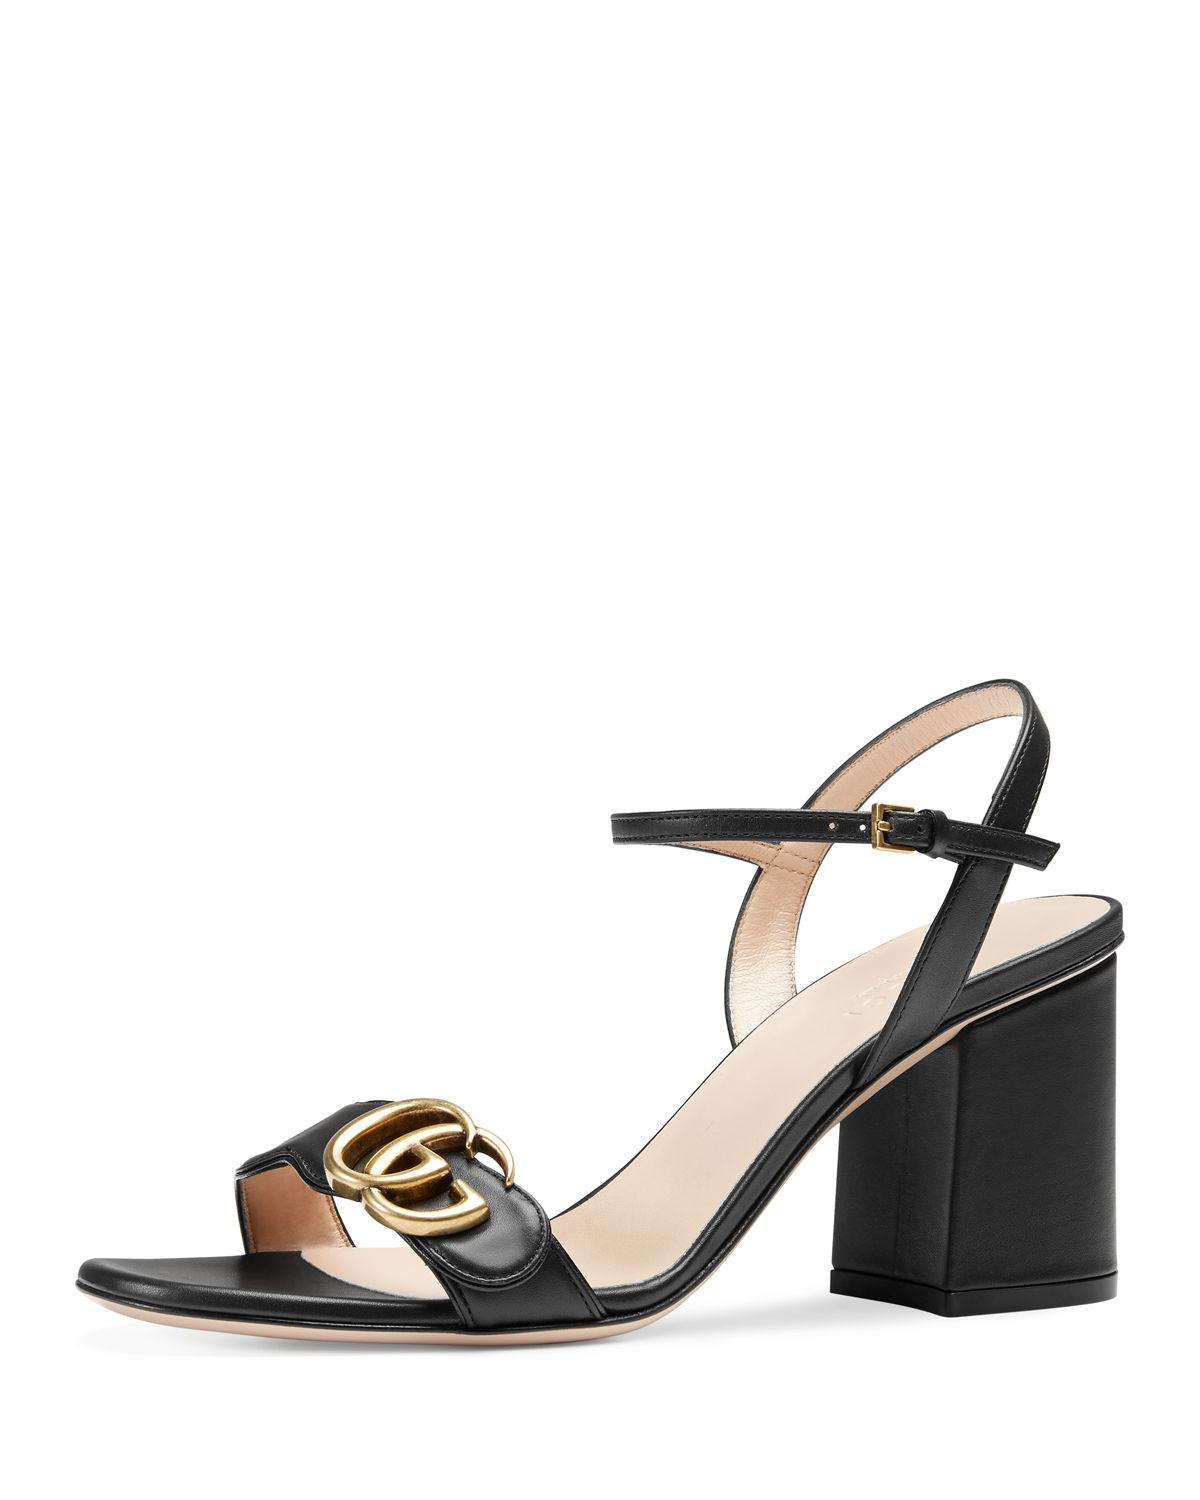 ba6a665f964 Lyst - Gucci Marmont Leather GG Block-heel Sandals in Black